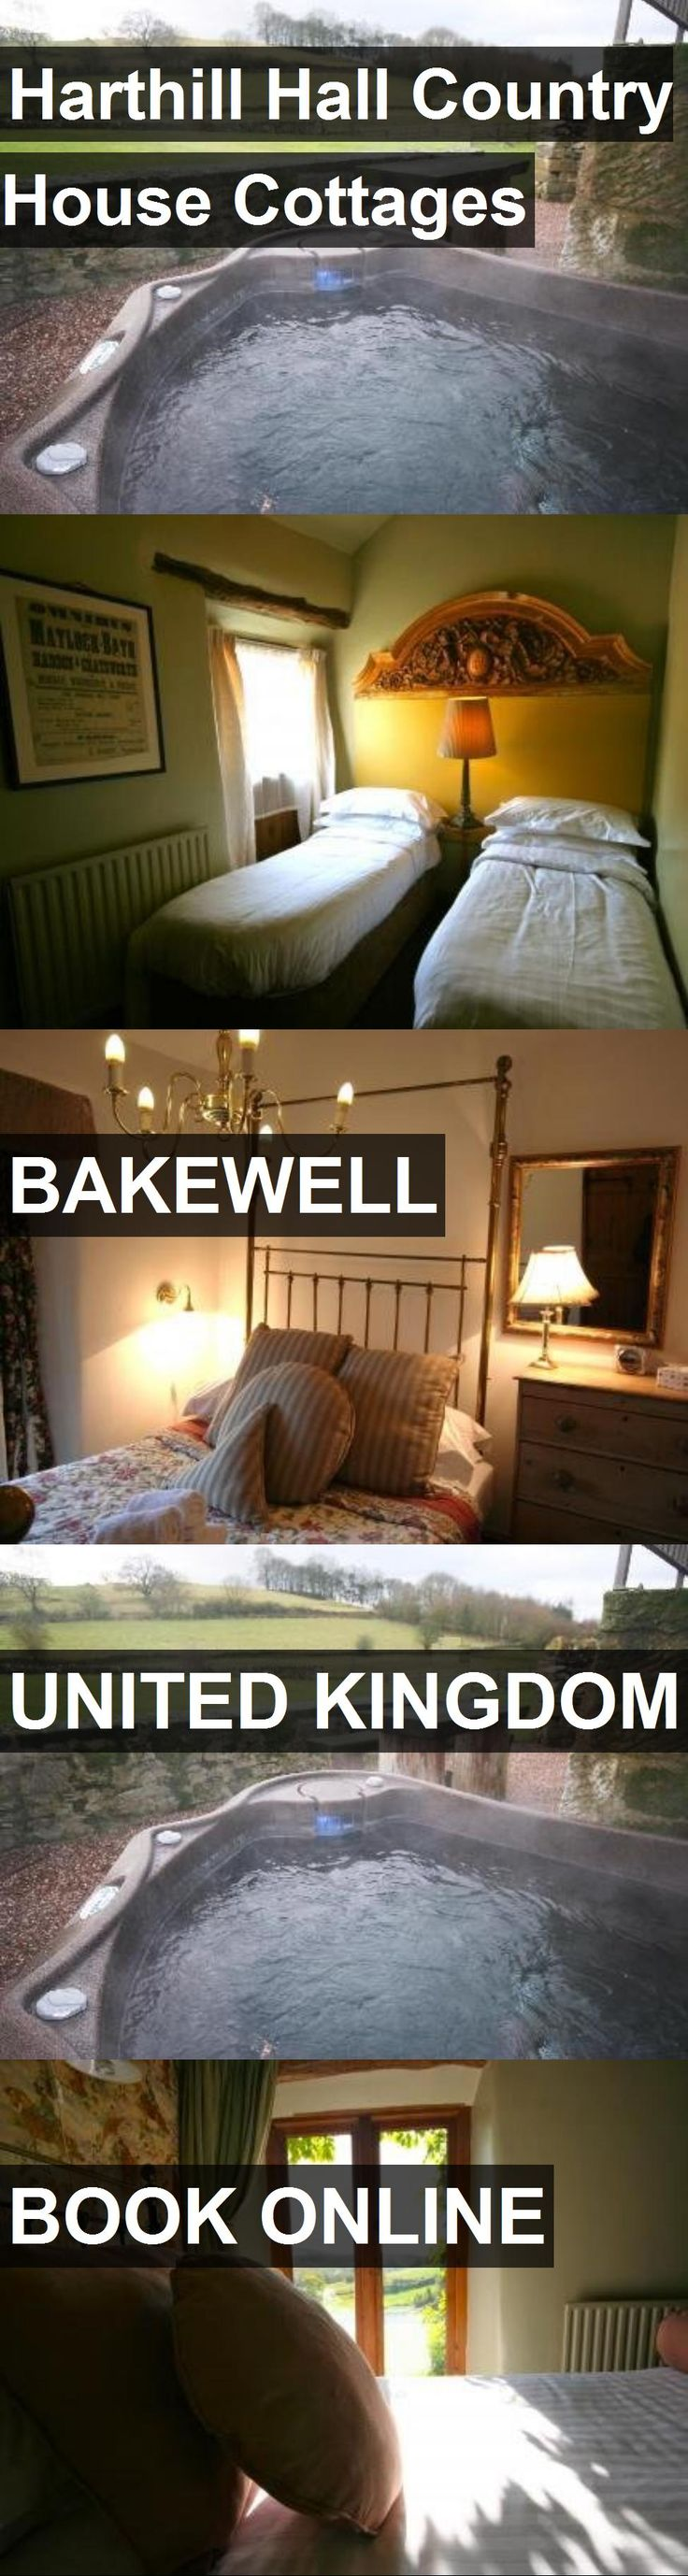 Hotel Harthill Hall Country House Cottages in Bakewell, United Kingdom. For more information, photos, reviews and best prices please follow the link. #UnitedKingdom #Bakewell #travel #vacation #hotel